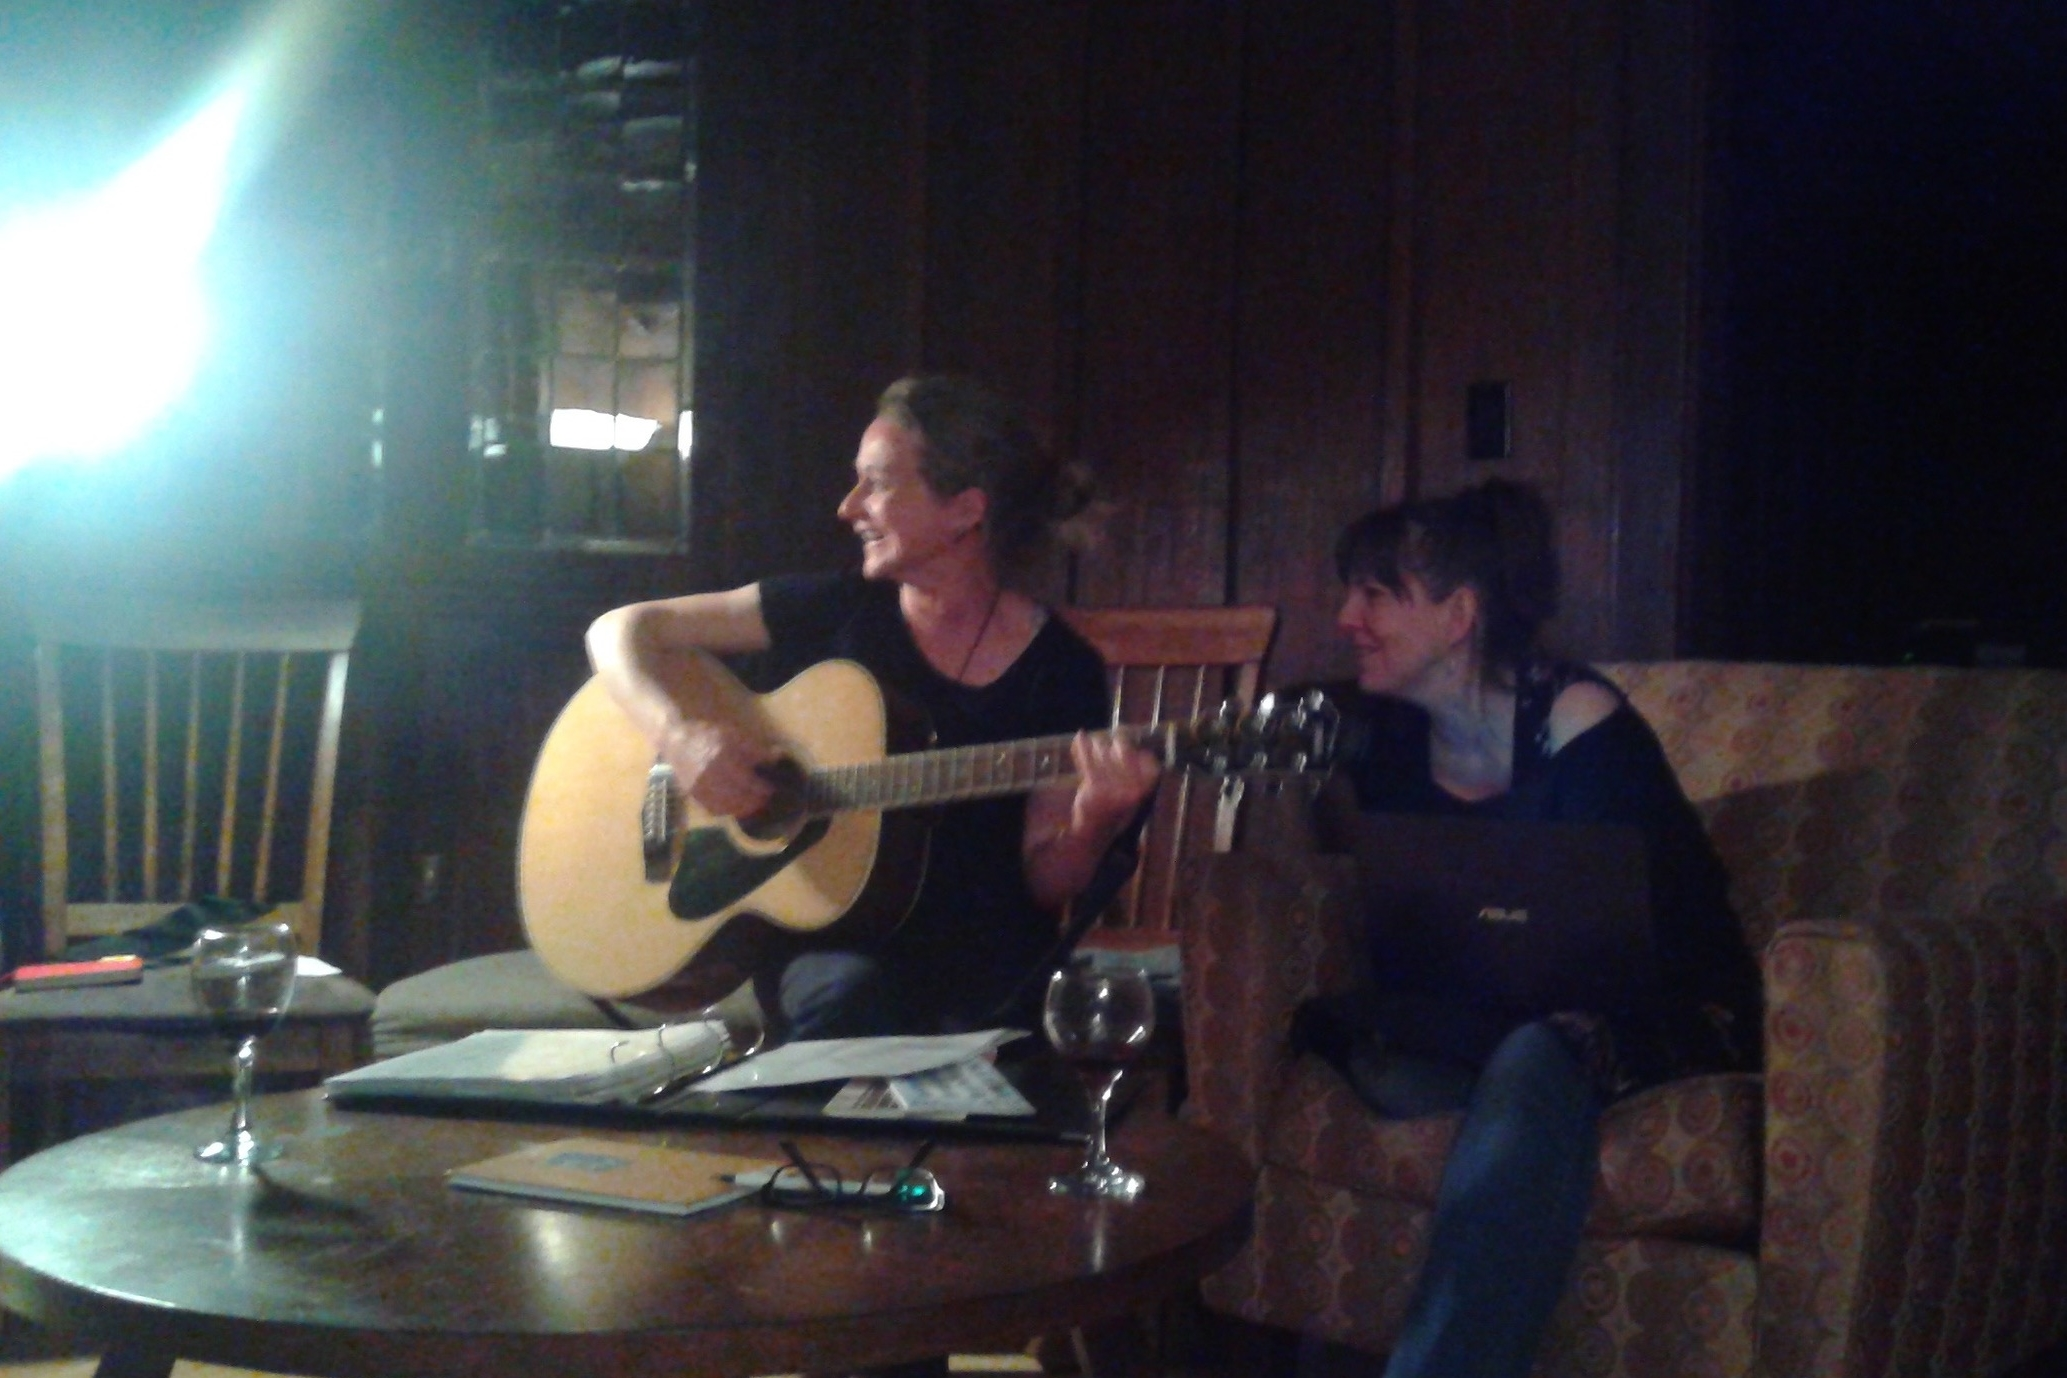 Monica Kidd and Sandra MacIntyre sang to us.